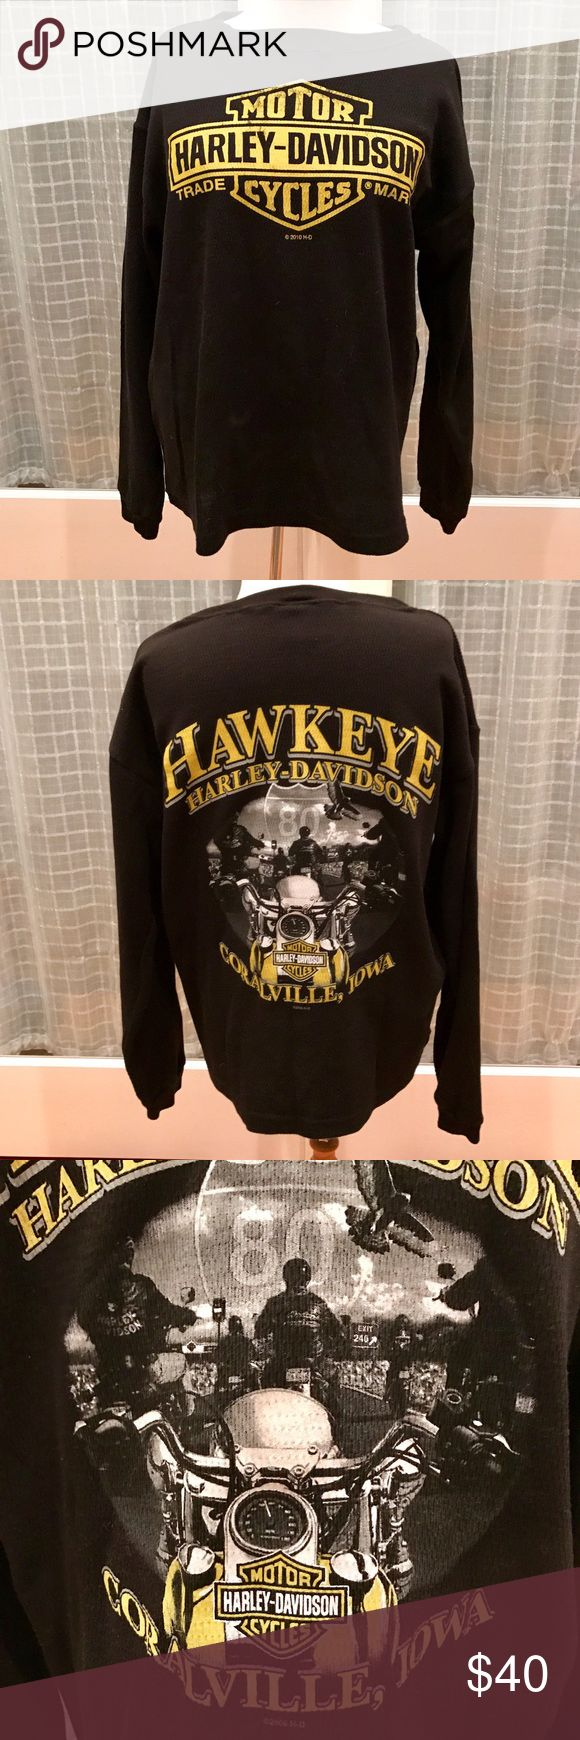 Harley-Davidson Sweatshirt Black cotton/poly blend waffle sweatshirt with the traditional logo shield in yellow on front. The back shows a great motorcycle motif and the location of Coralville, Iowa. Brand new condition. Harley-Davidson Shirts Sweatshirts & Hoodies